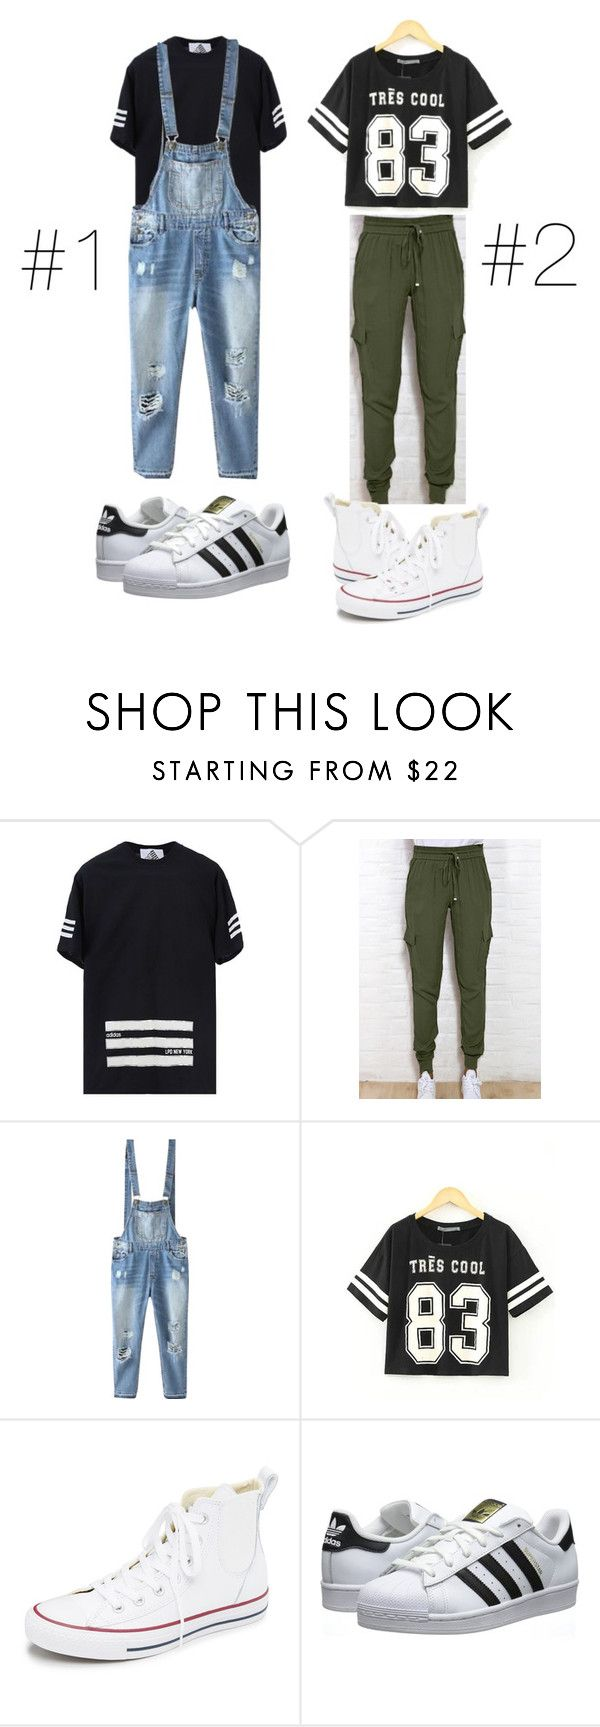 """Hip hop dancer outfits"" by kellymckee21 ❤ liked on Polyvore featuring adidas, RIFLE, Relaxfeel, Converse and adidas Originals"